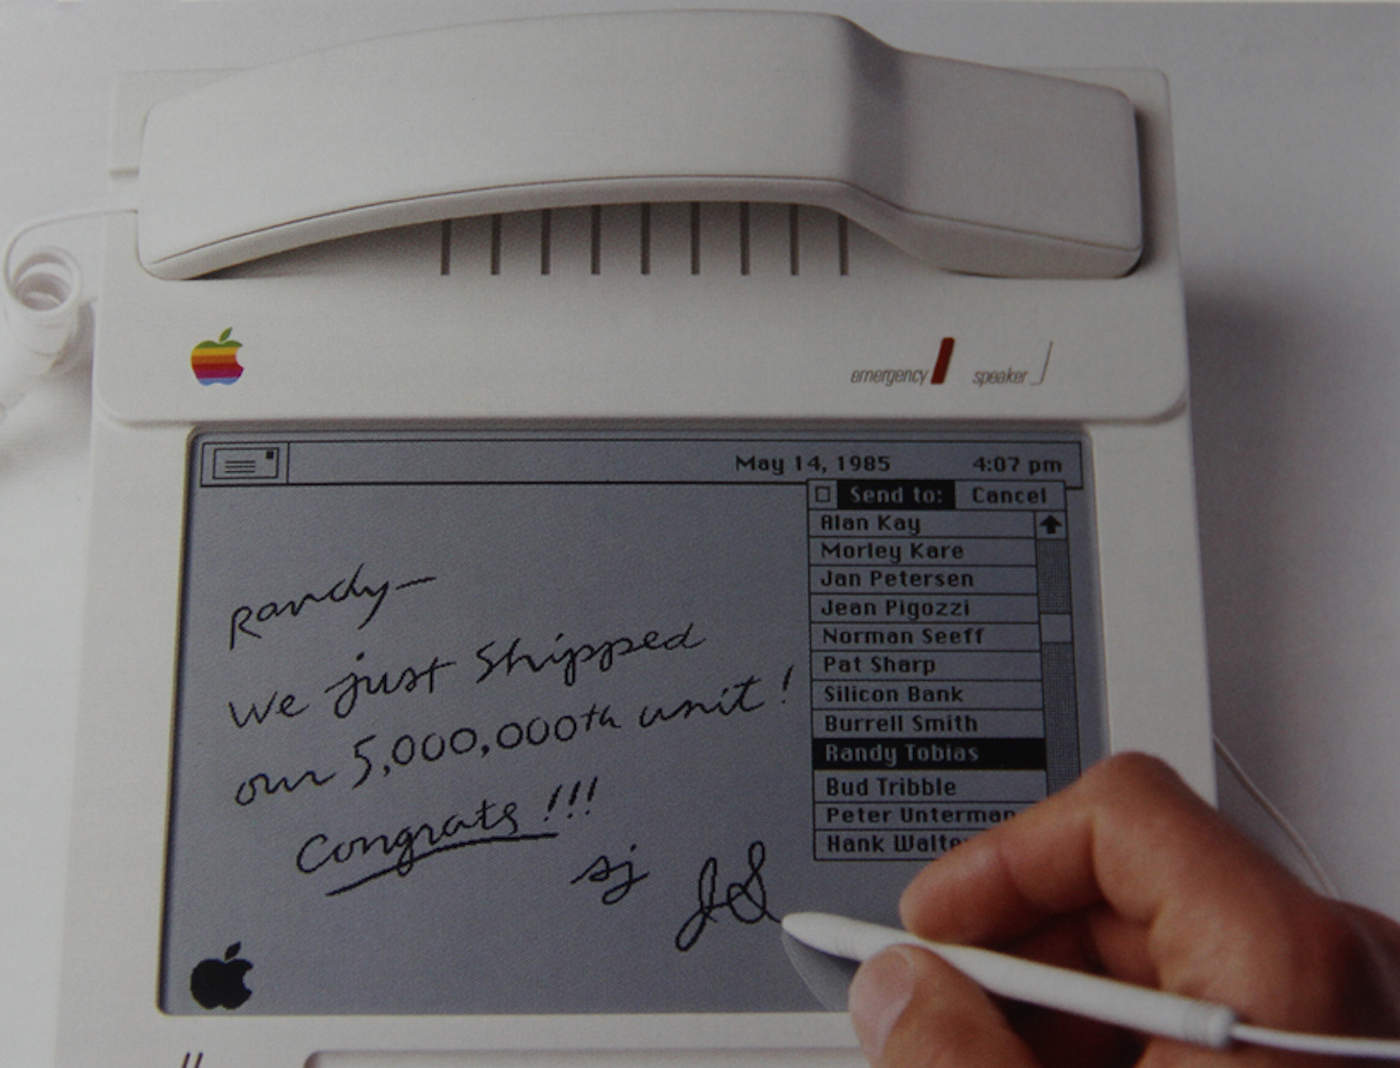 Let us remind you of the weird Apple products that time forgot.